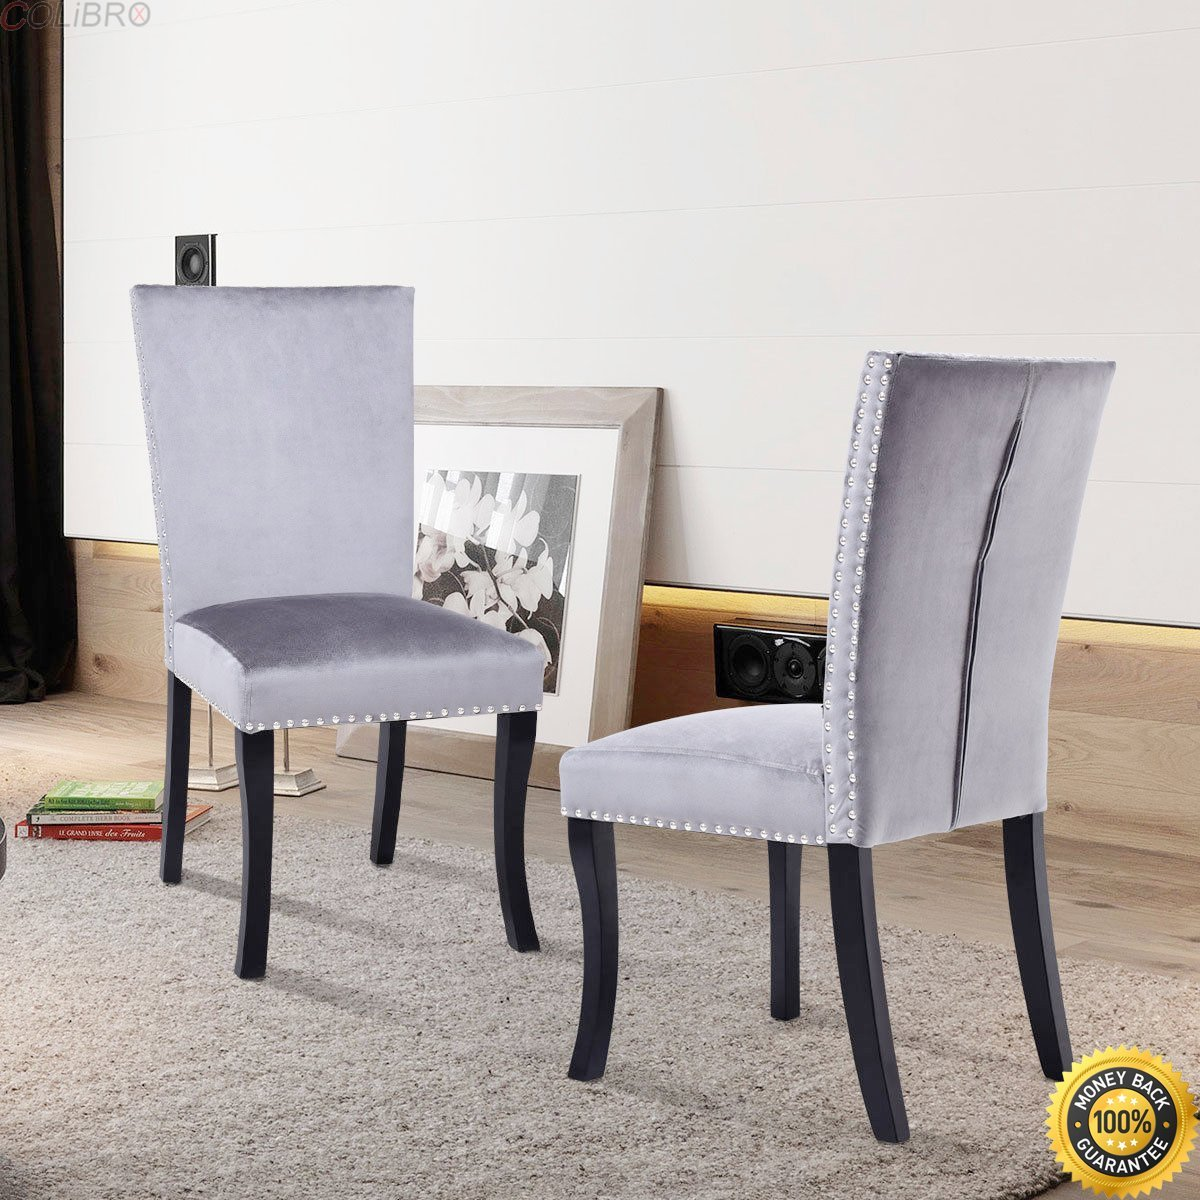 nailhead dining room chairs value city furniture get quotations colibroxset of dining chairs nailhead upholstered padded seat armless solid wood legs cheap linen chairs find